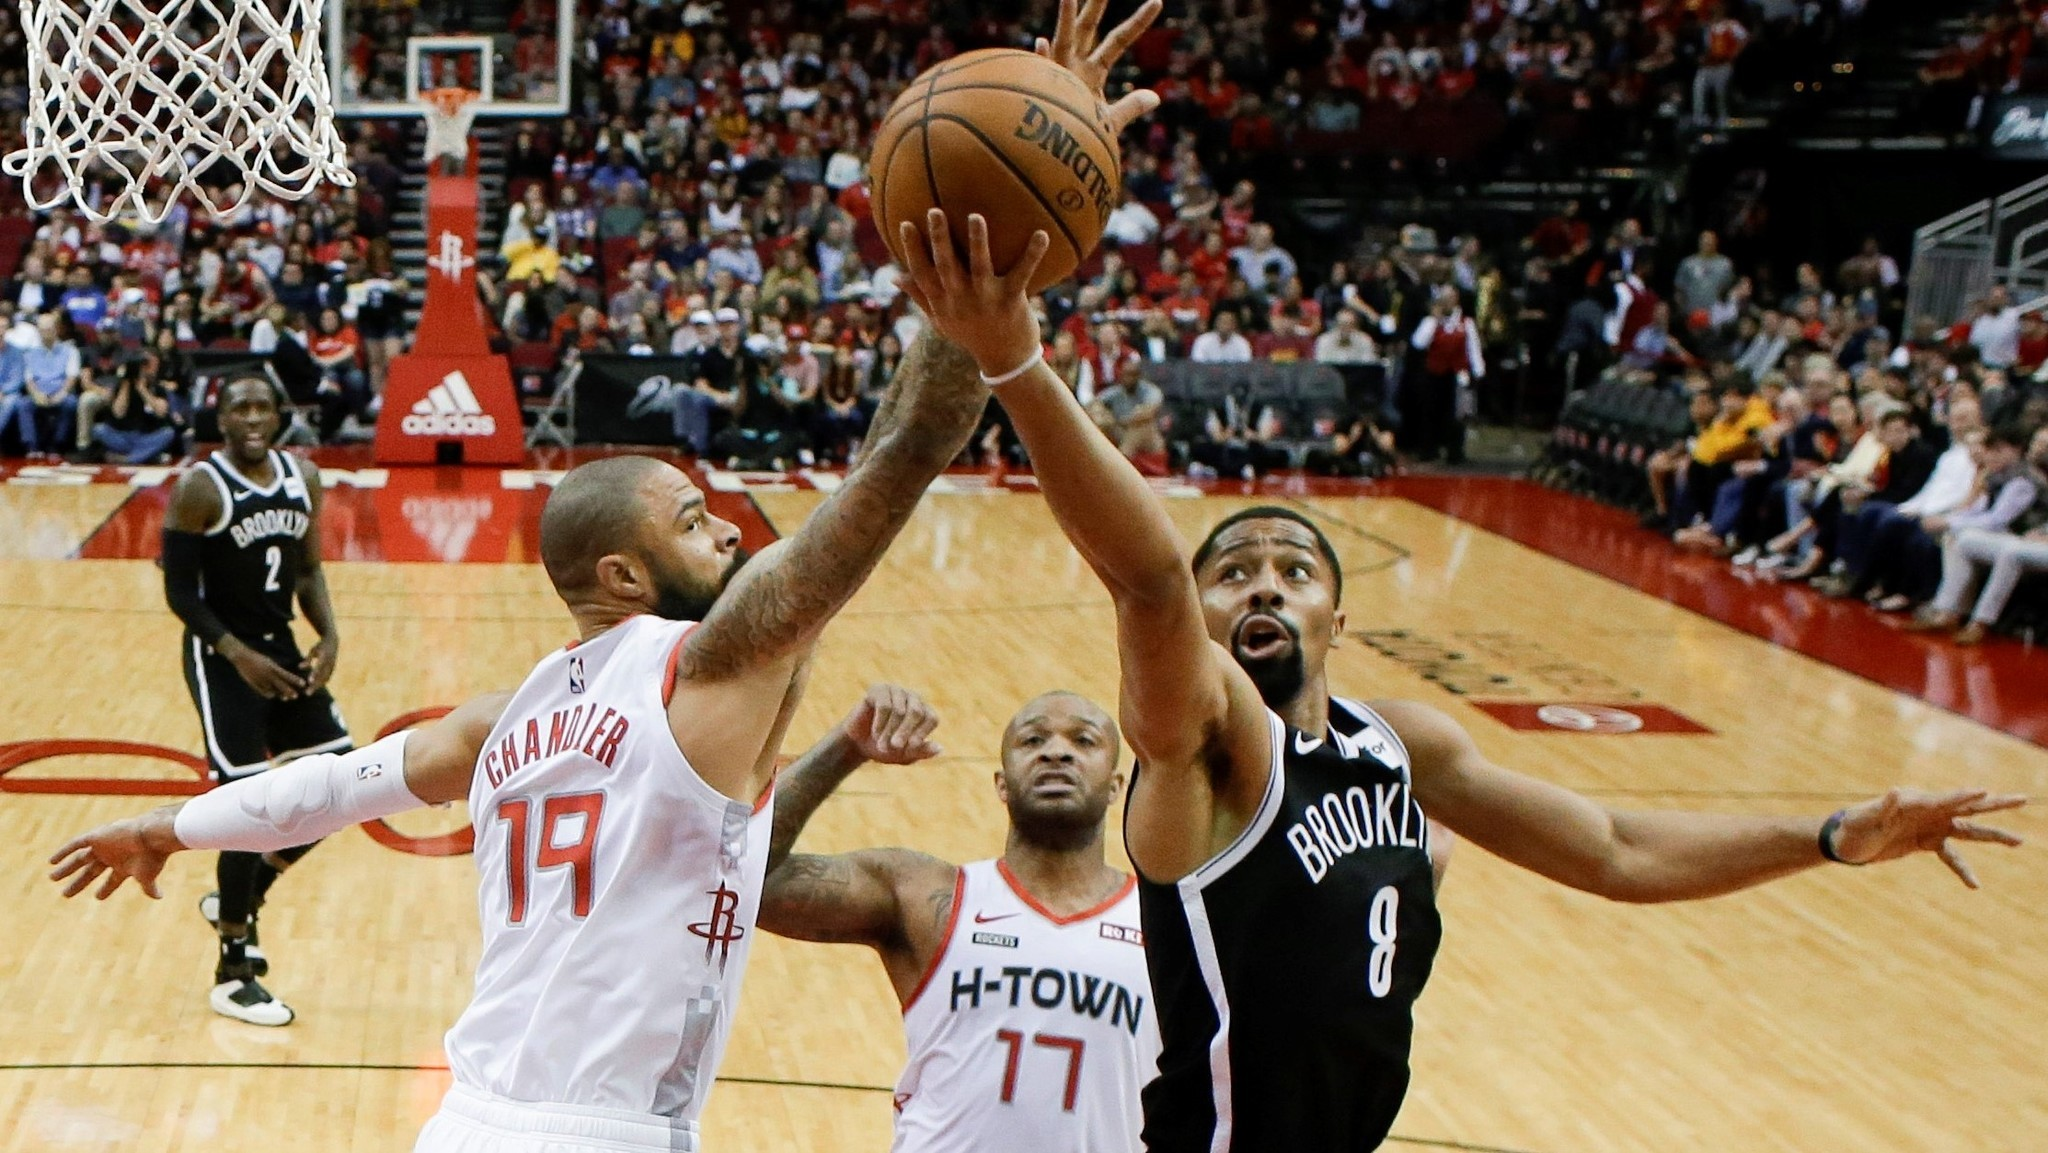 Shorthanded Nets can't finish comeback in loss to Rockets as James Harden drops 44